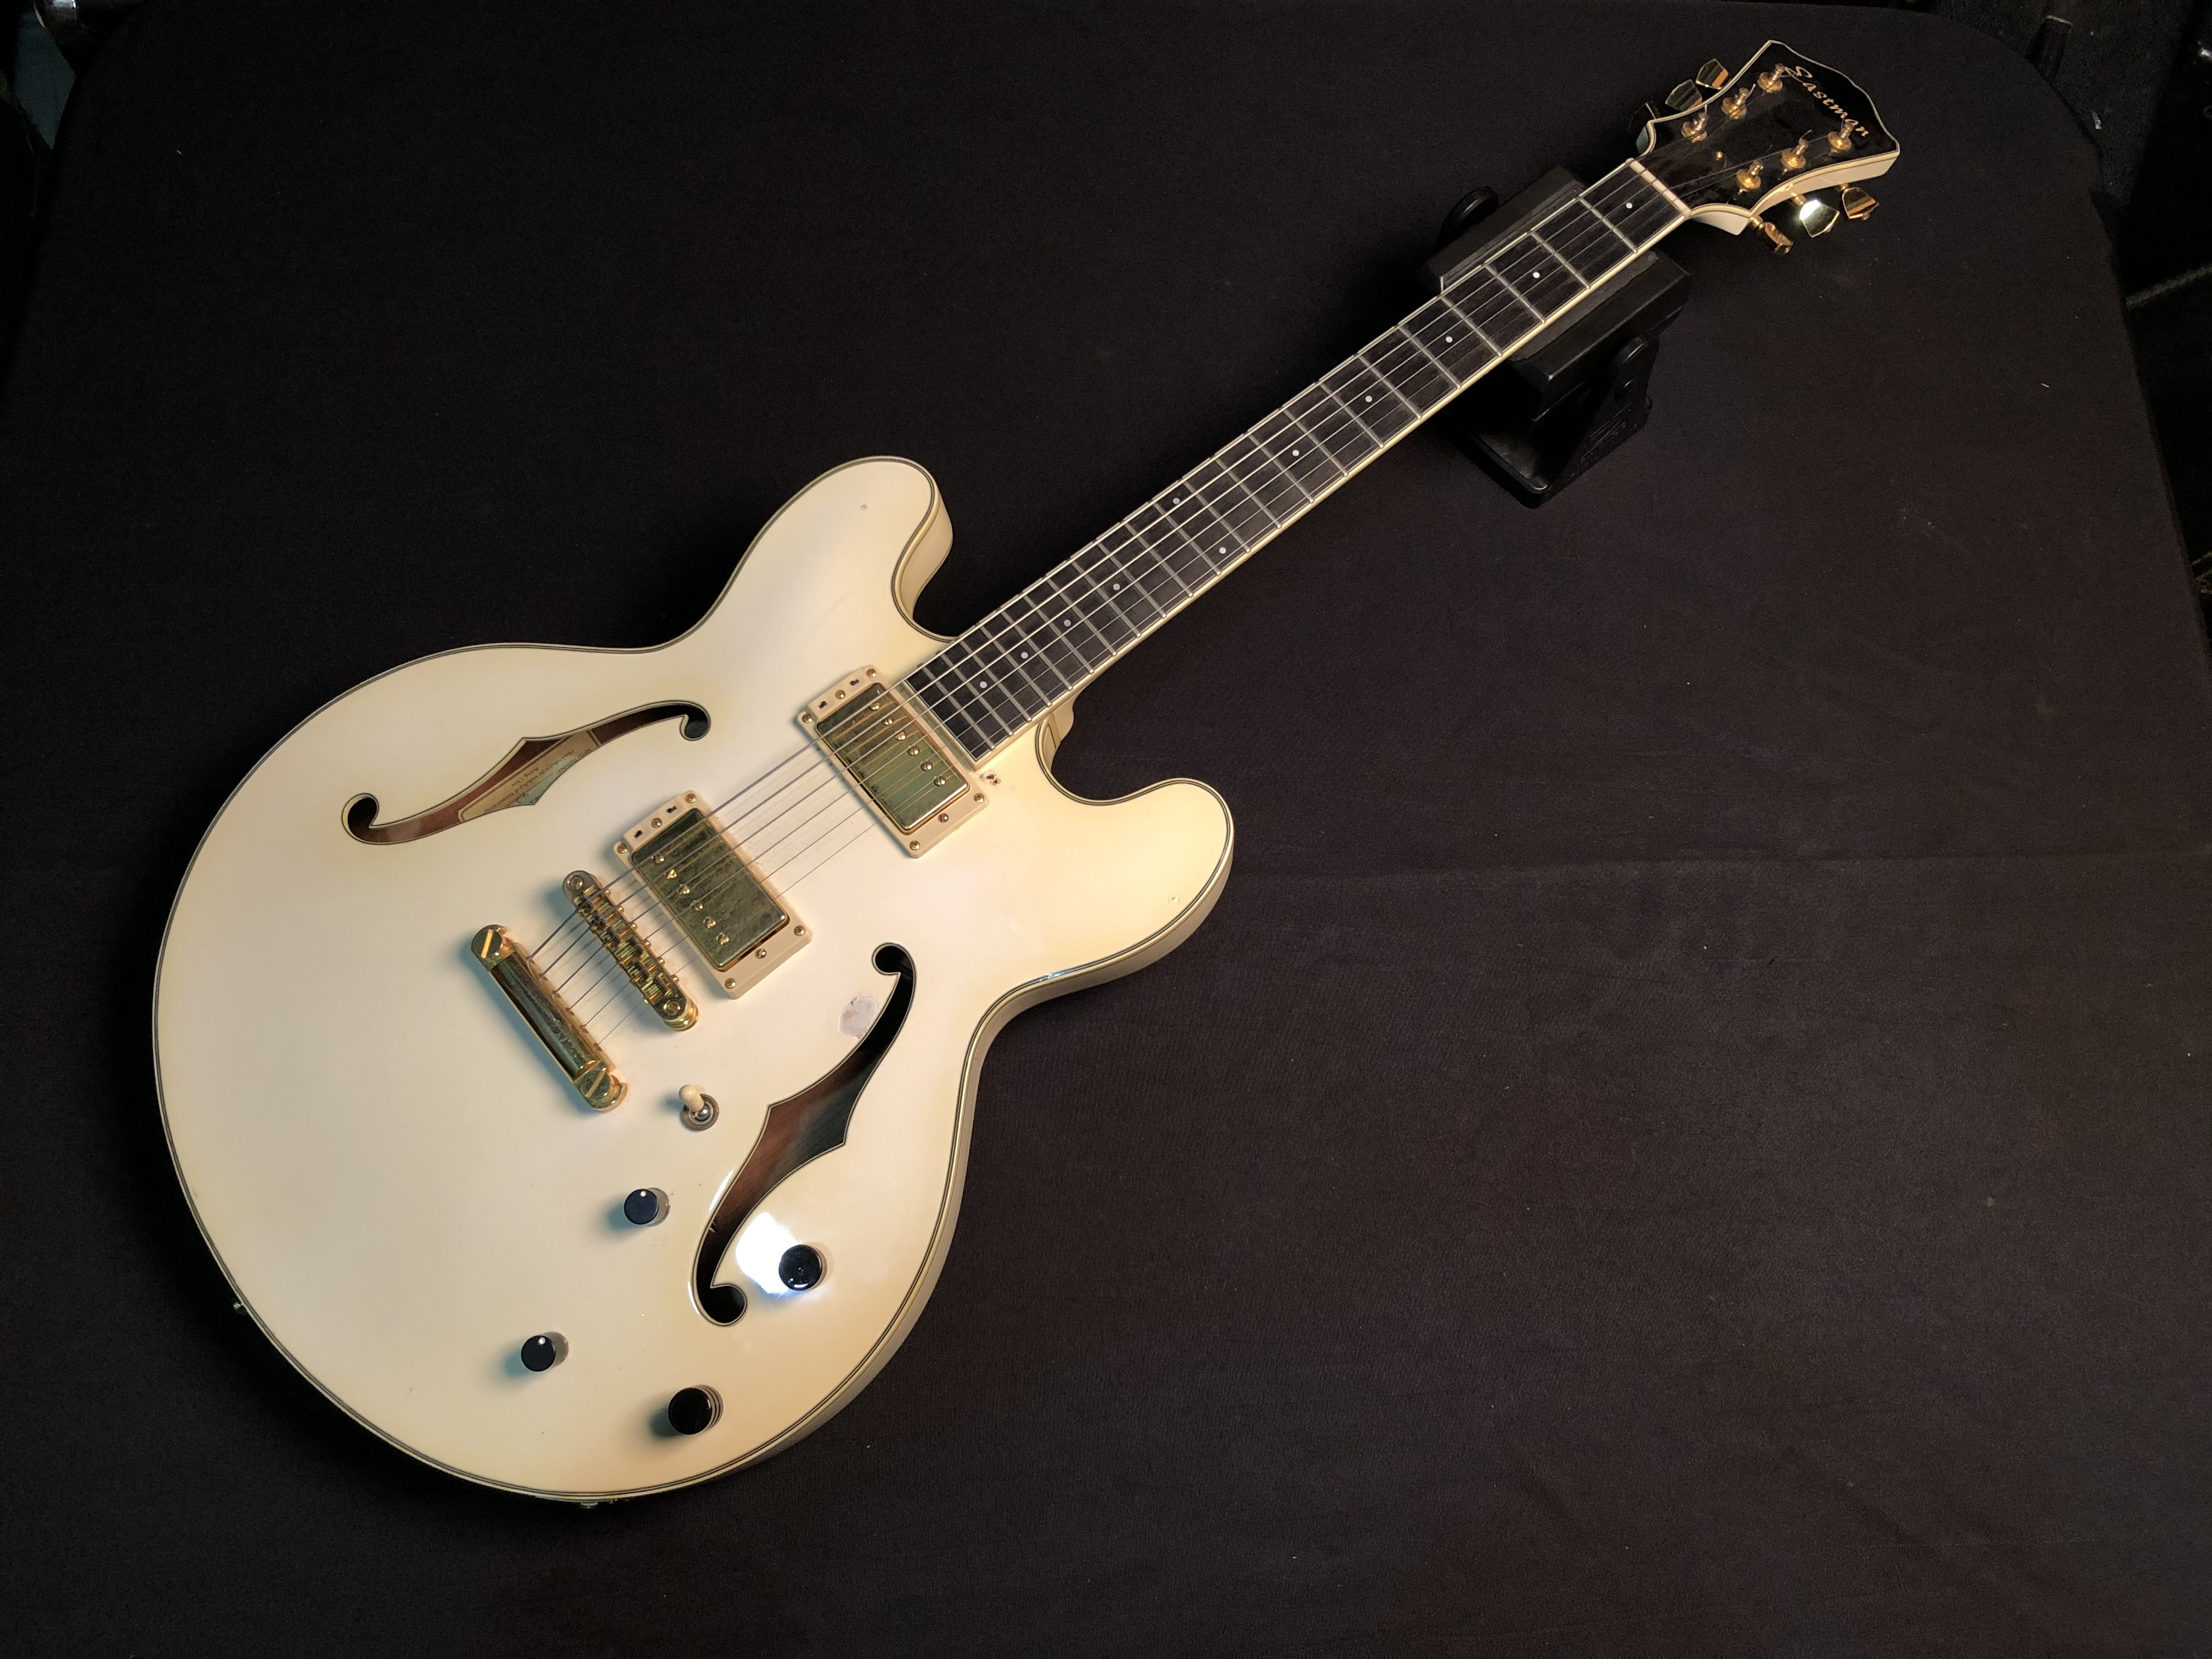 2009 EASTMAN - T186 MX WHITE - ELECTRIC GUITAR